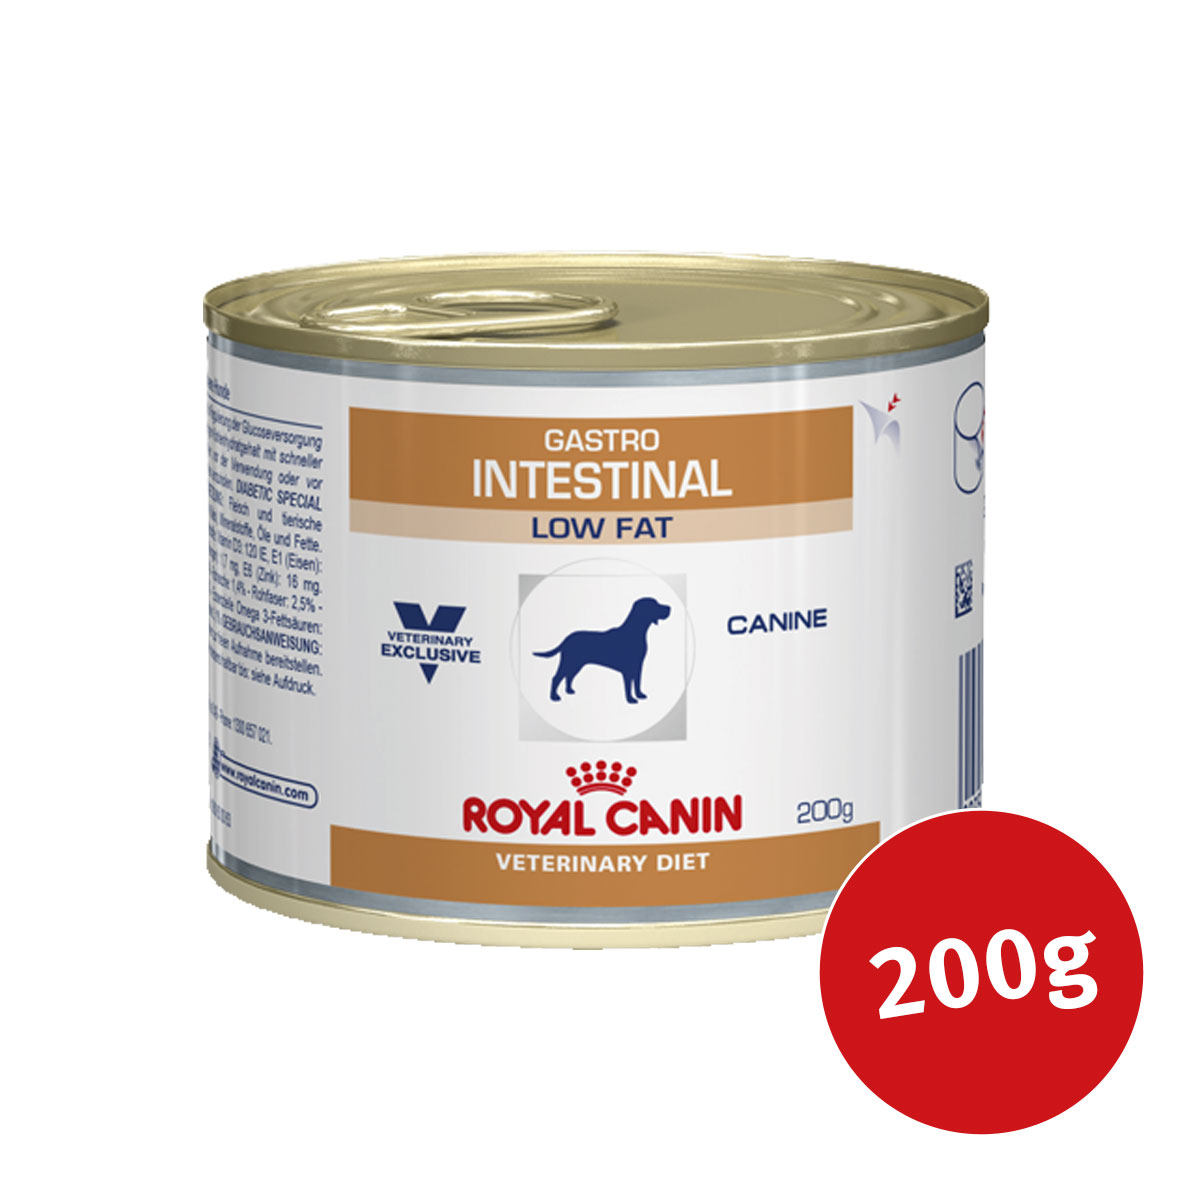 royal canin vet diet nassfutter gastro intestinal s o low fat. Black Bedroom Furniture Sets. Home Design Ideas